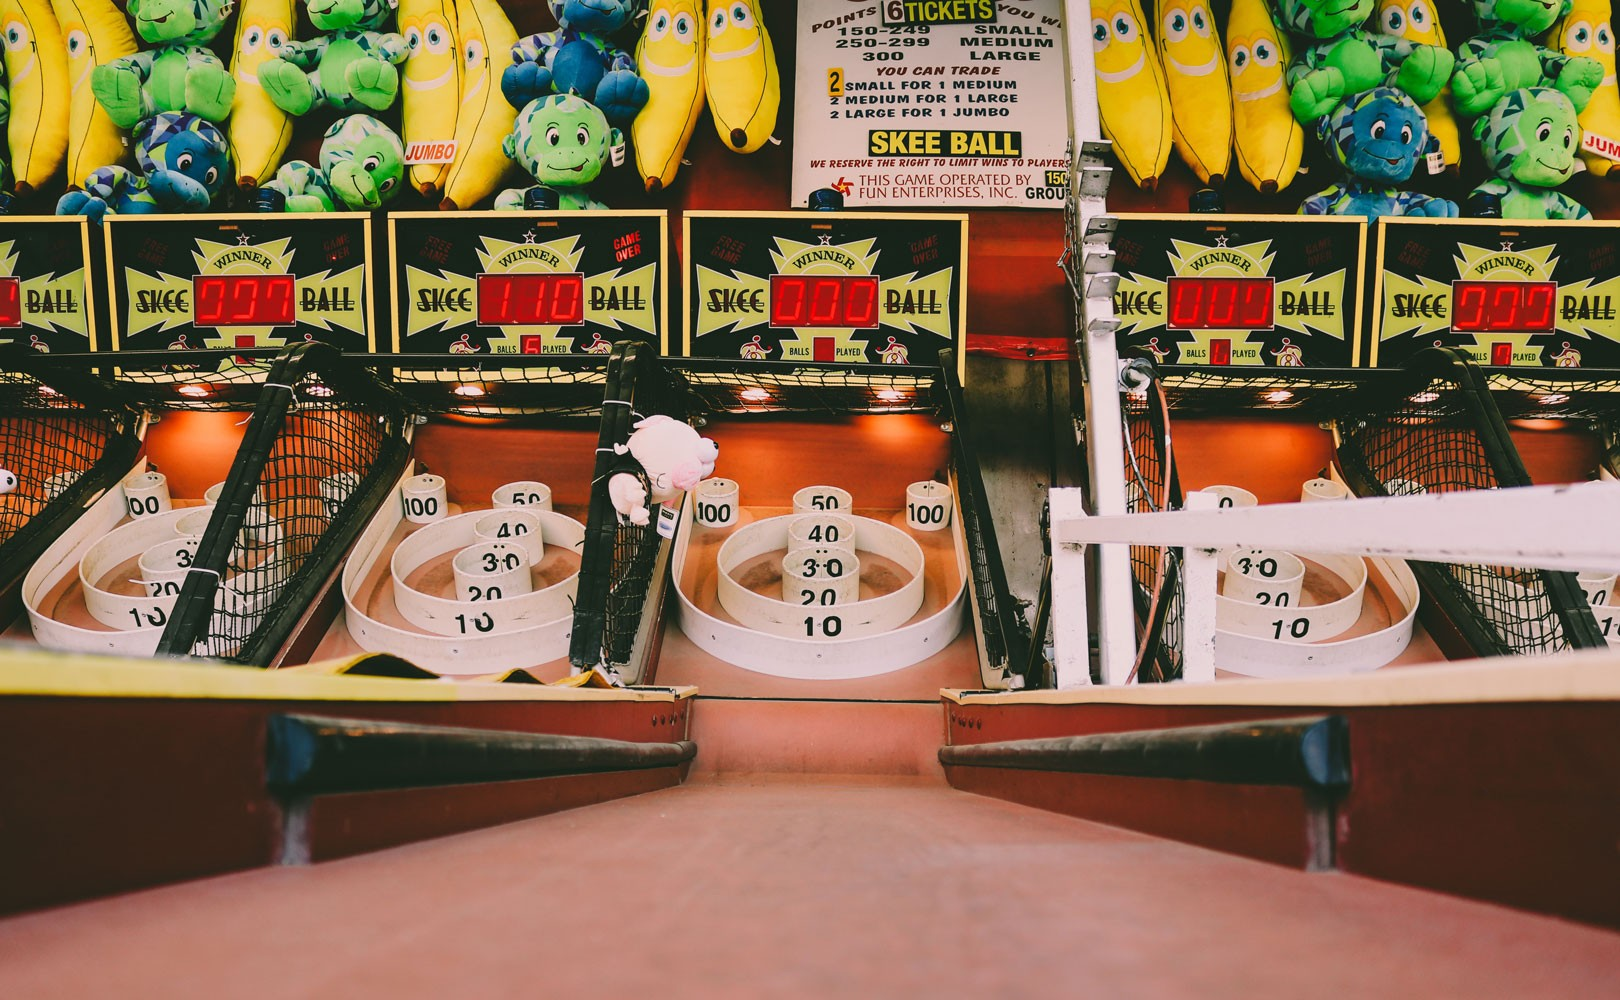 Photo of skeeball game with prizes hanging above